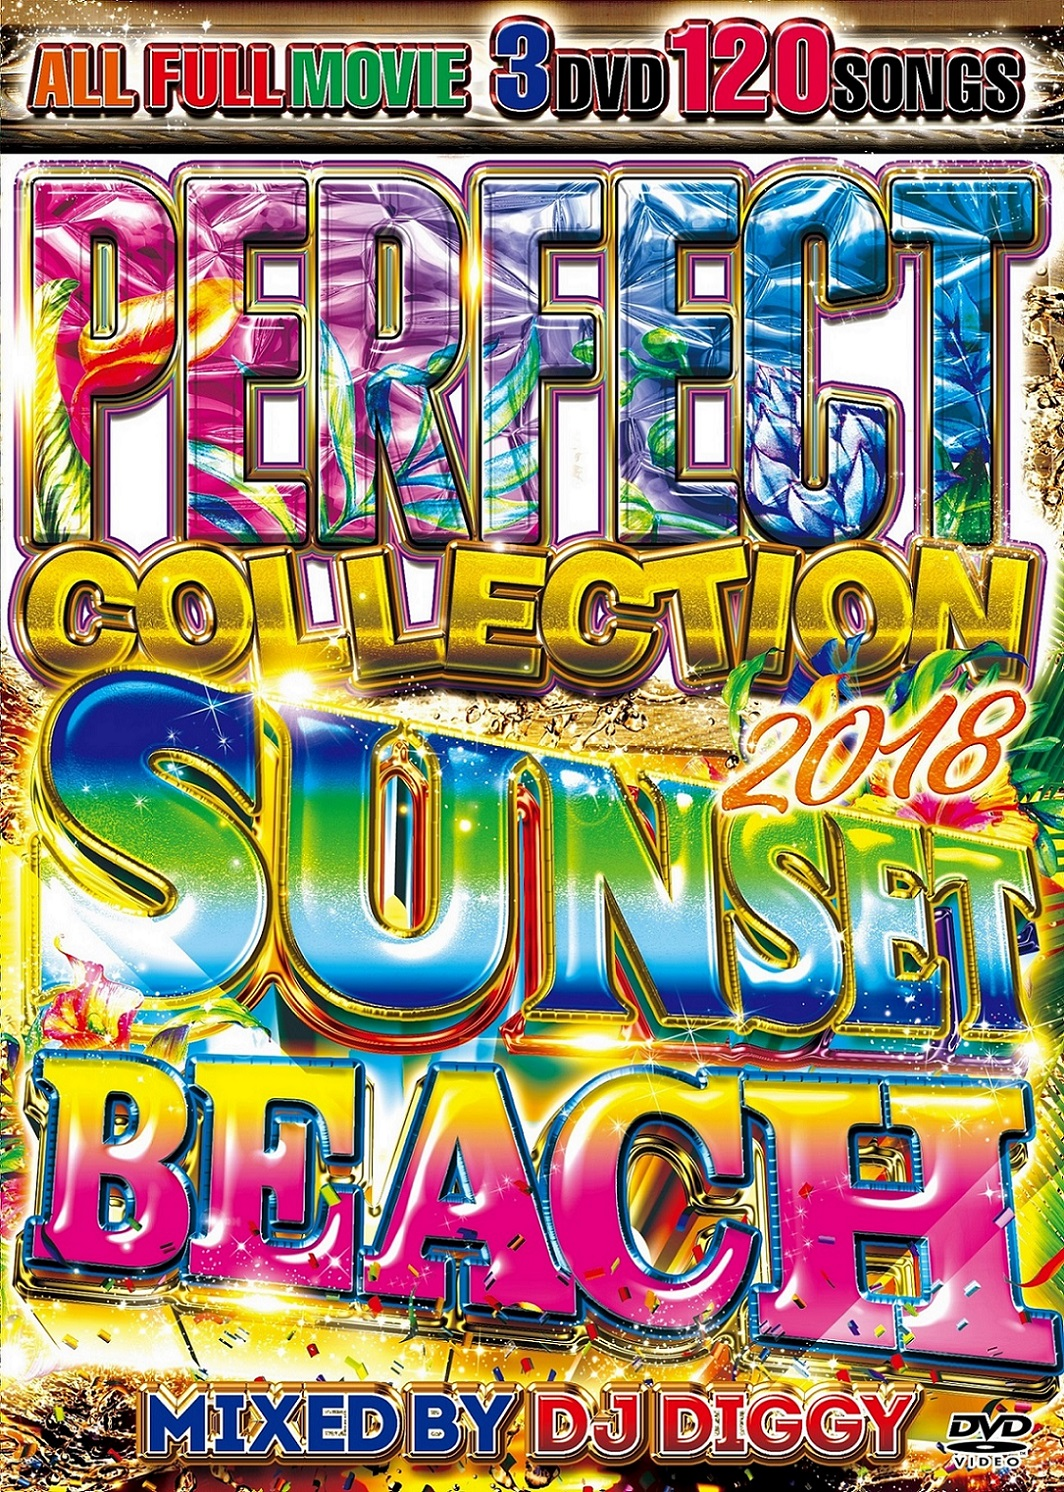 【3組】 PERFECT COLLECTION 2018 SUNSET BEACH / DJ DIGGY  【[国内盤MIX DVD】